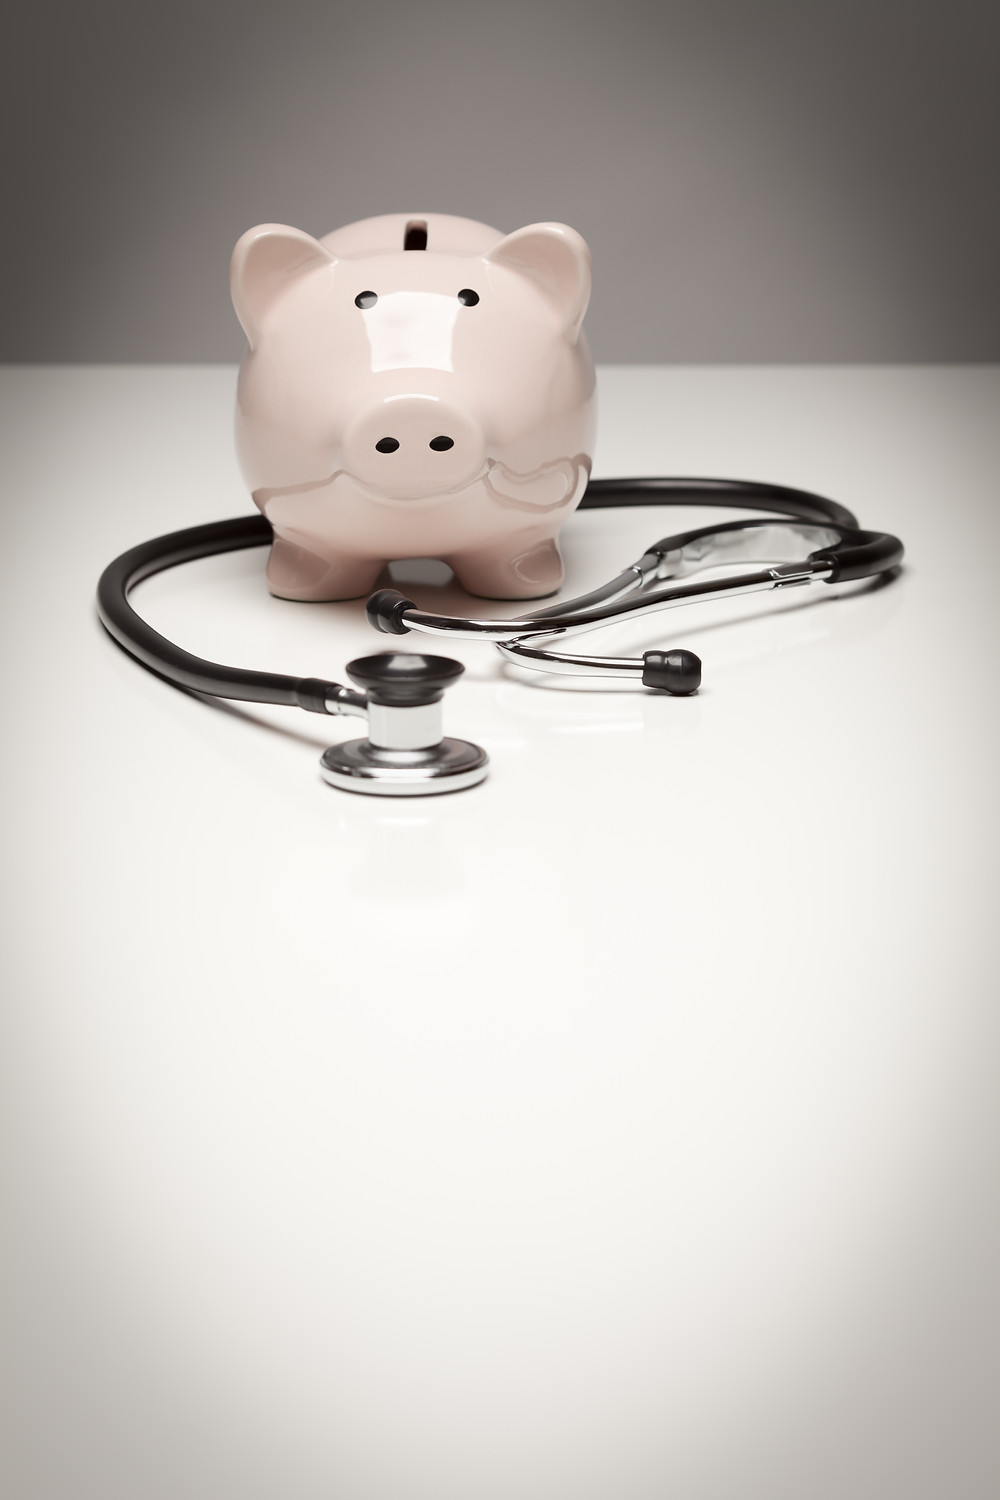 Piggy Bank Stethoscope Chiropractic Costs Less Dr Nathan Jenner Chiropractor Prahran Windsor 3181